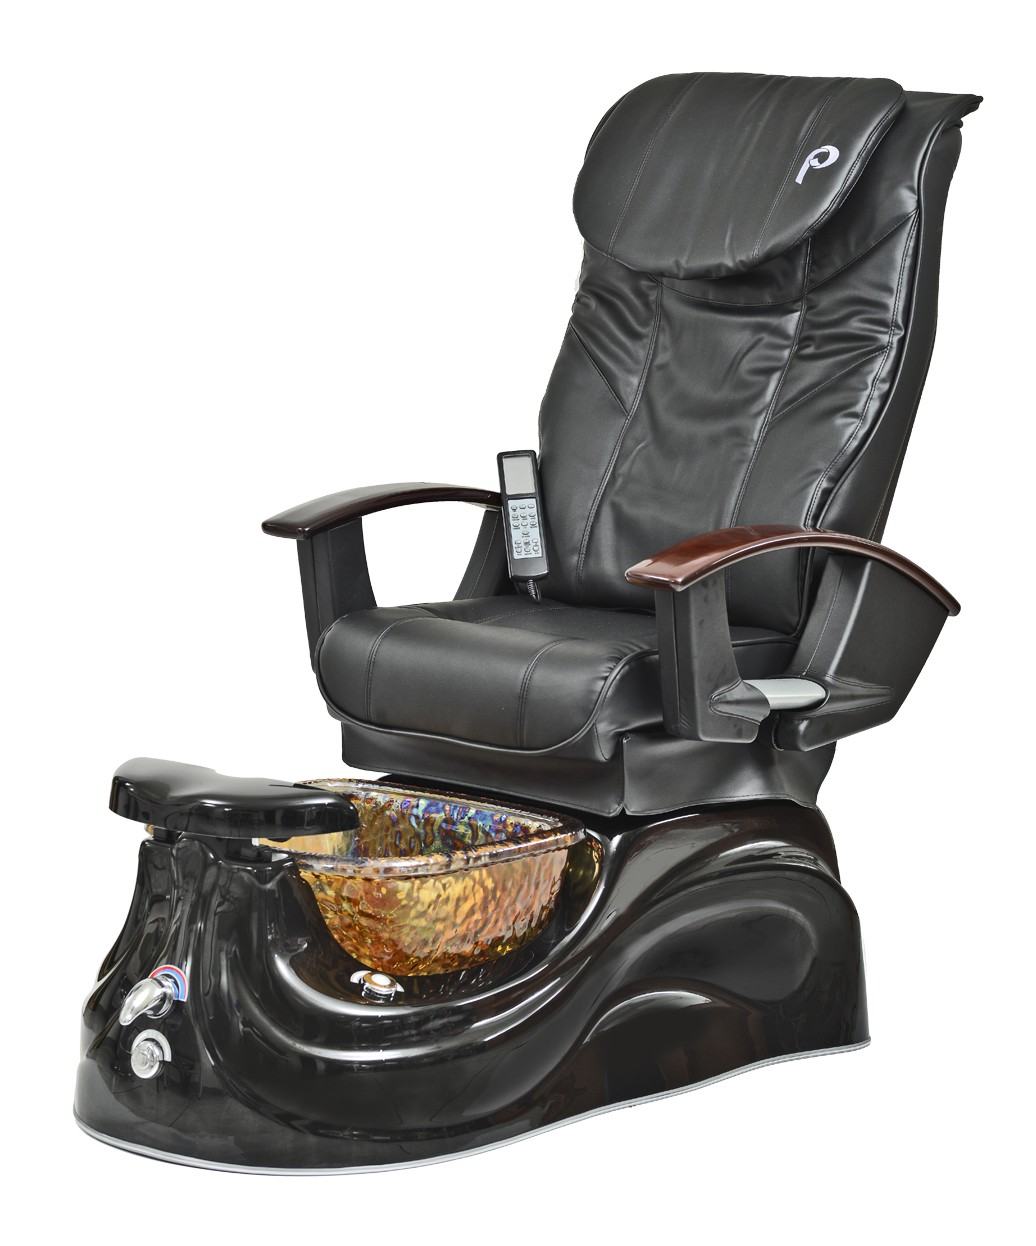 pedicure chairs used best inc recliner pibbs ps65 san marino pipeless spa w glass bowl